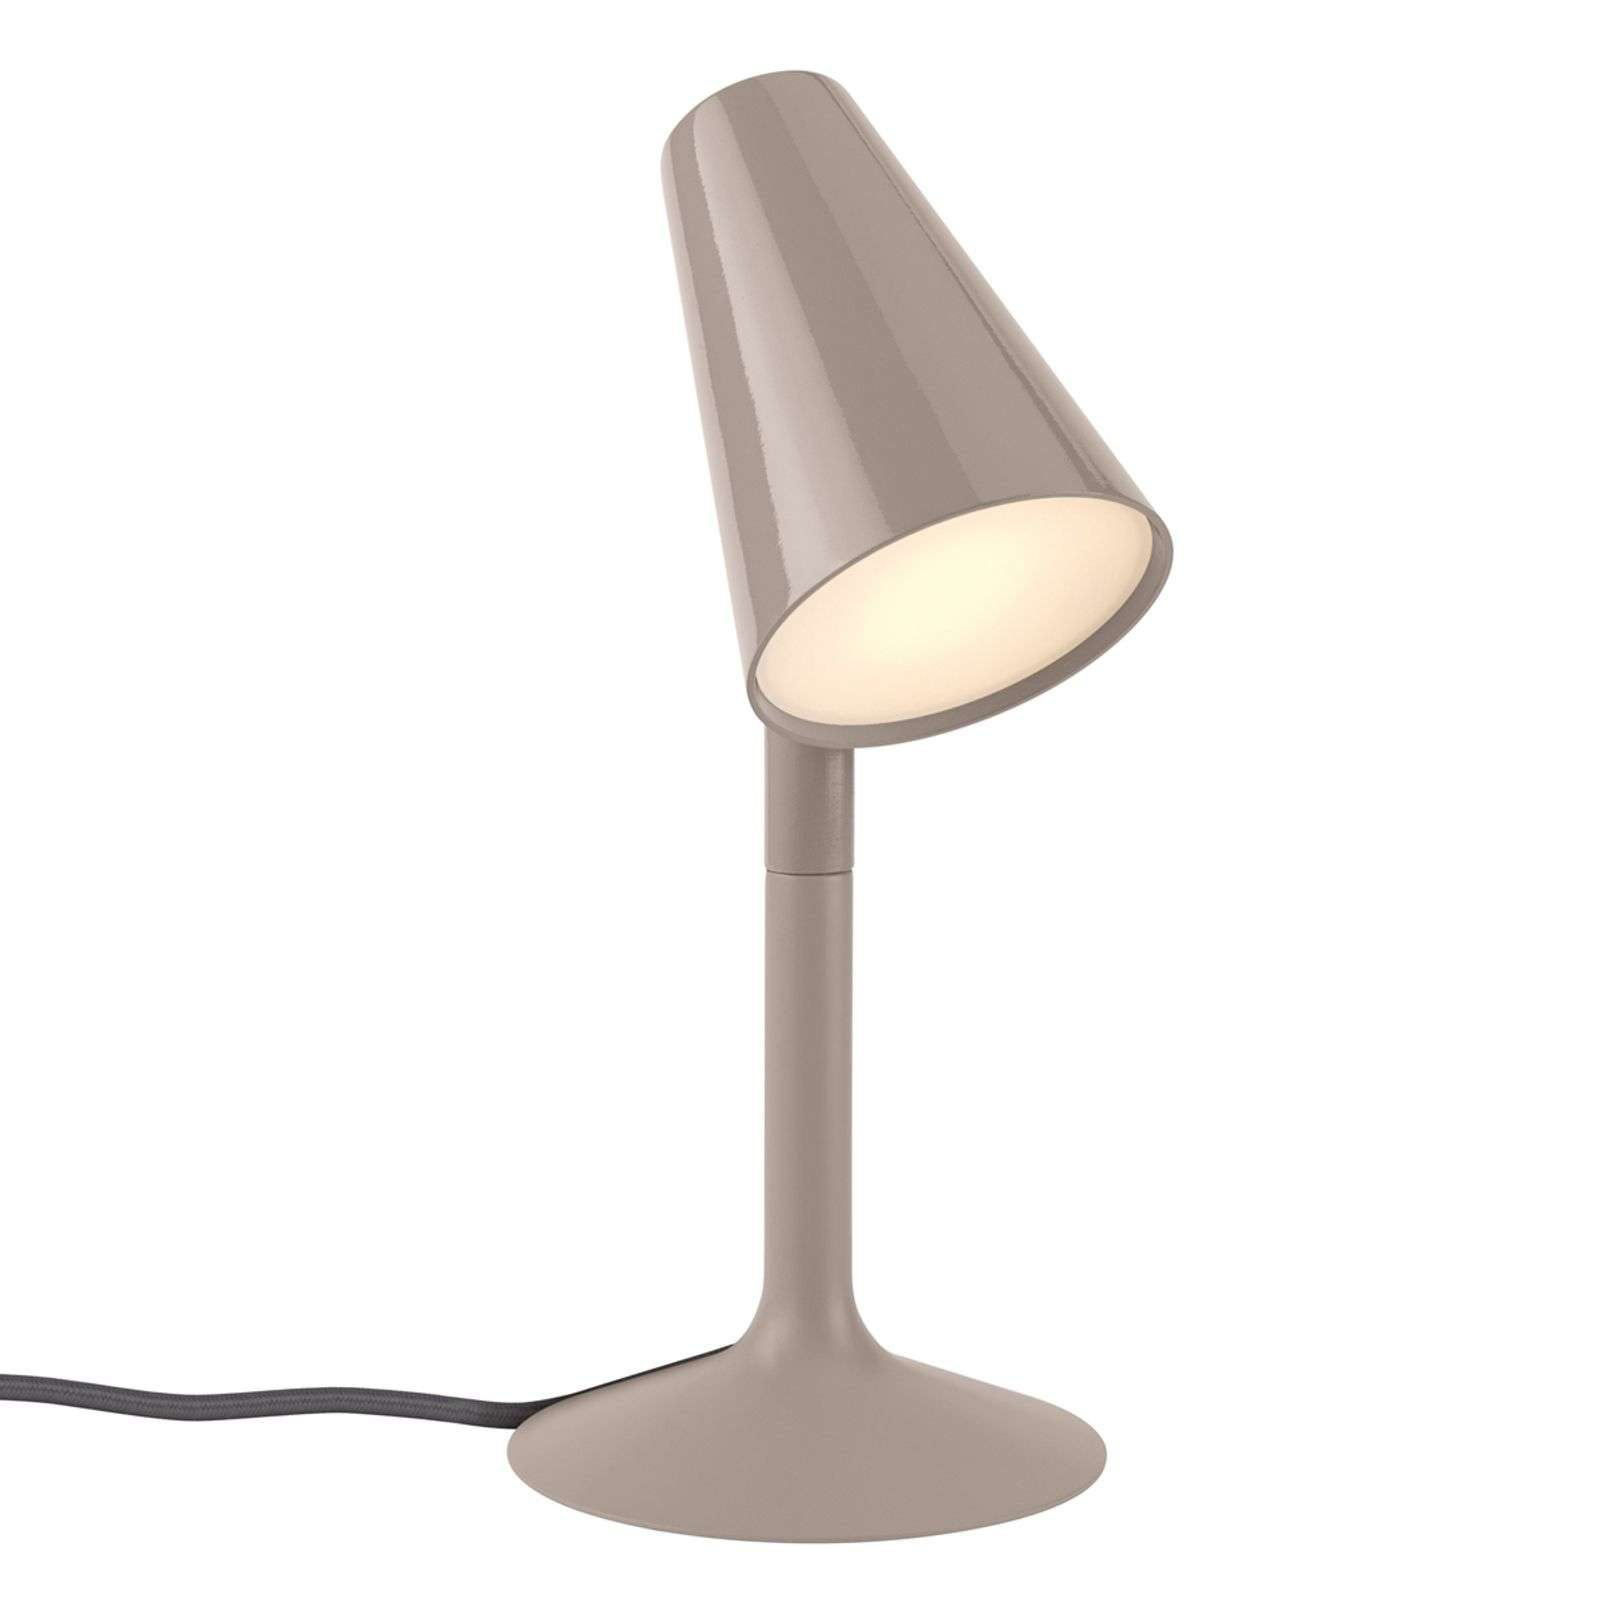 Lampe à poser LED Piculet, taupe